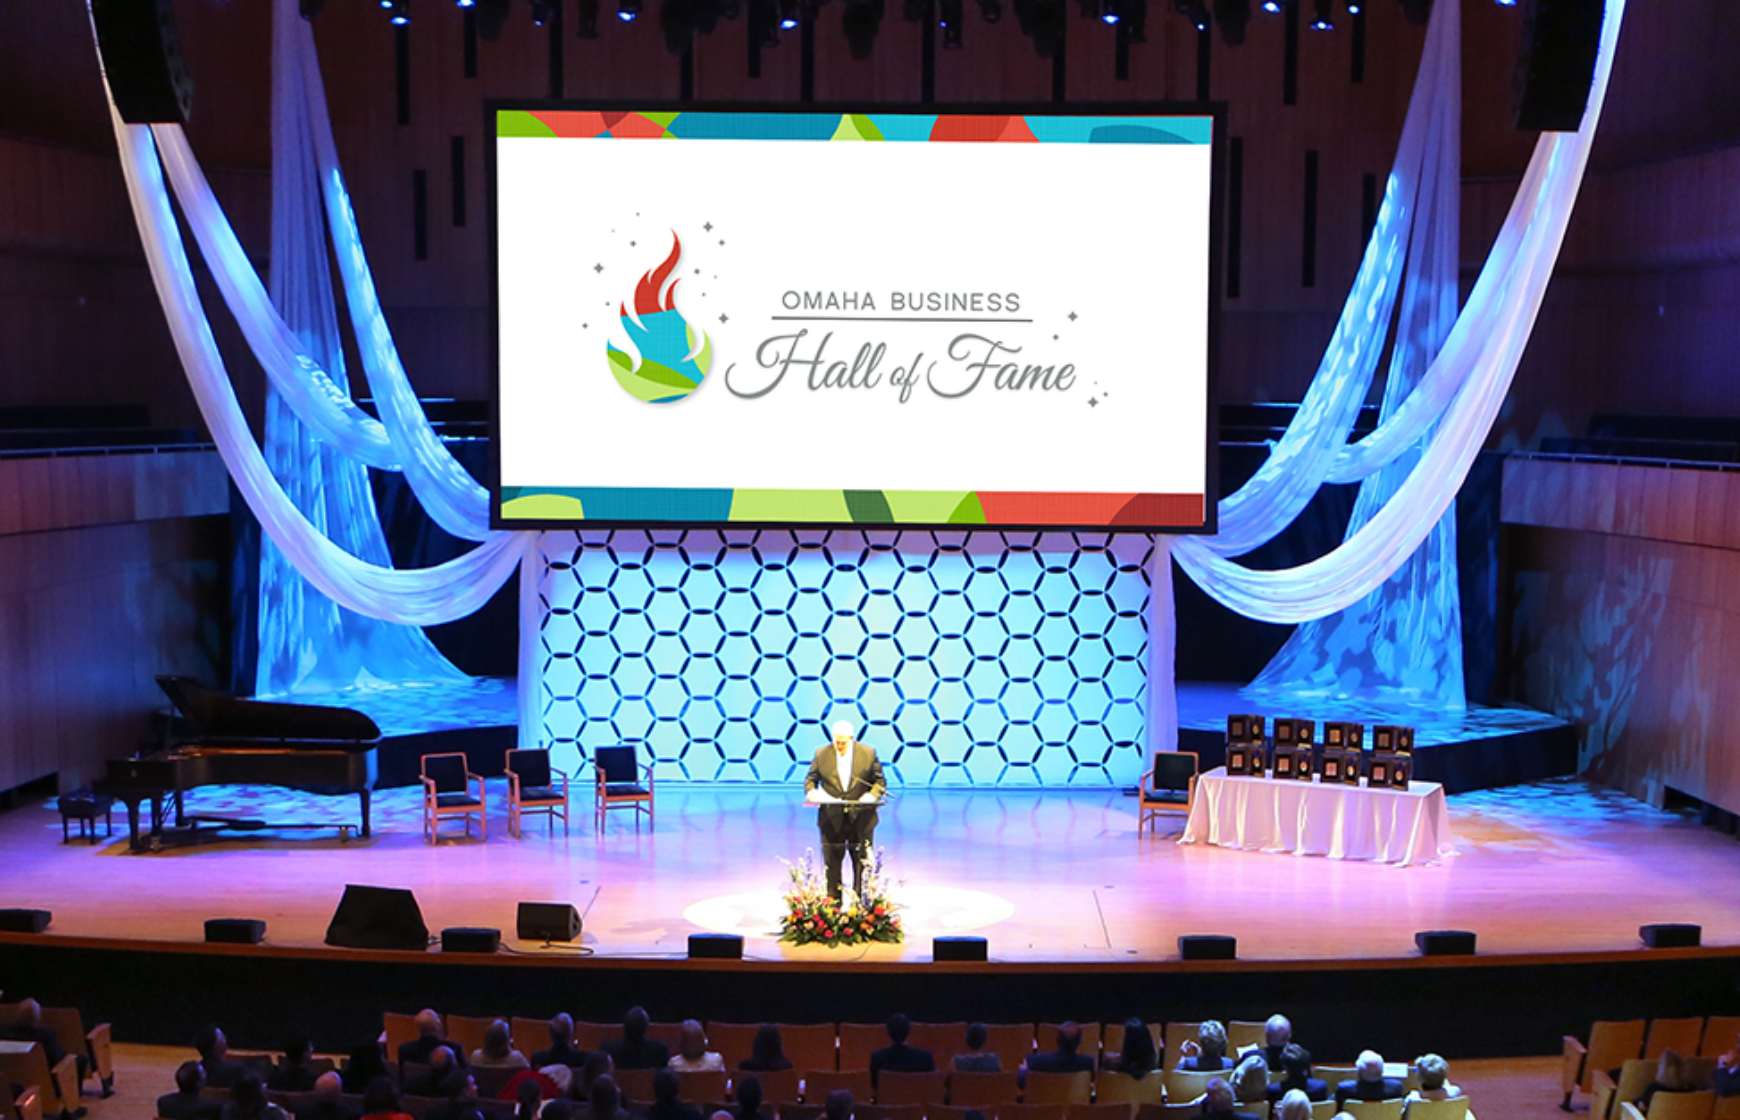 Man on stage at a podium during Omaha Business Hall of Fame